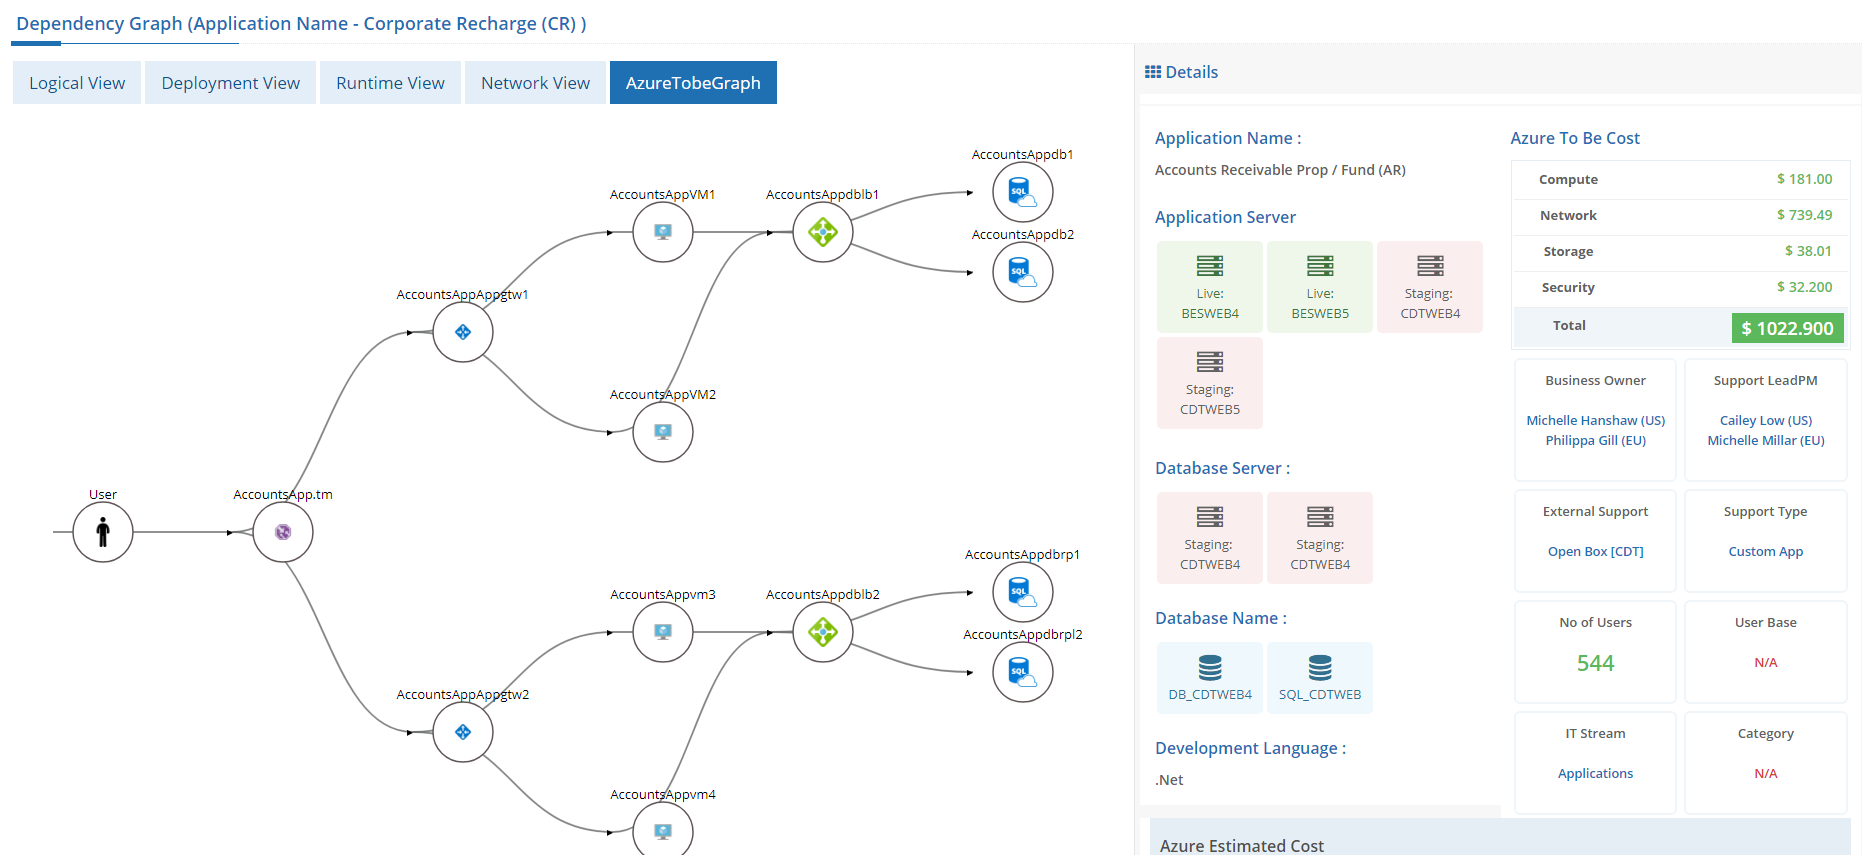 Sample Dependency Graph Dashboard With Tabbed Look And Side Window For Short Information Graphing Development Deployment